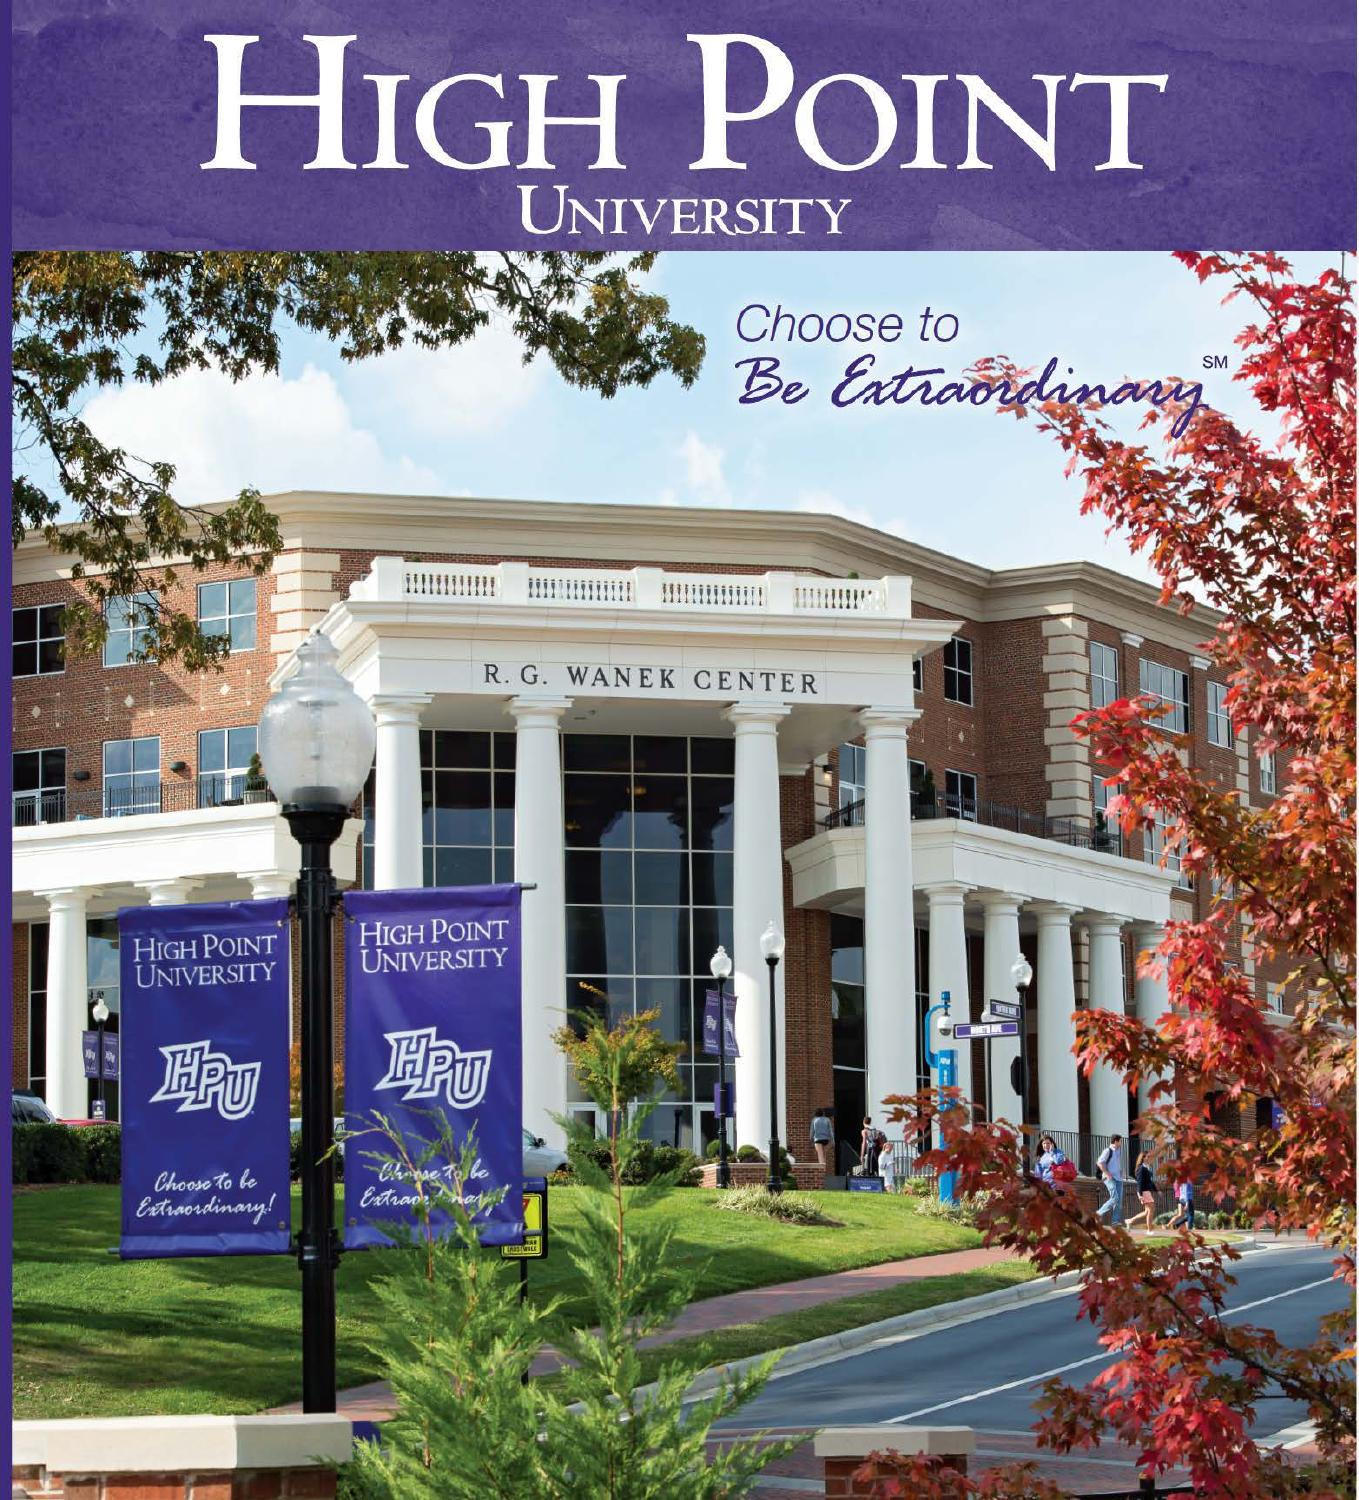 High point university 2014 viewbook by high point university for High pointe